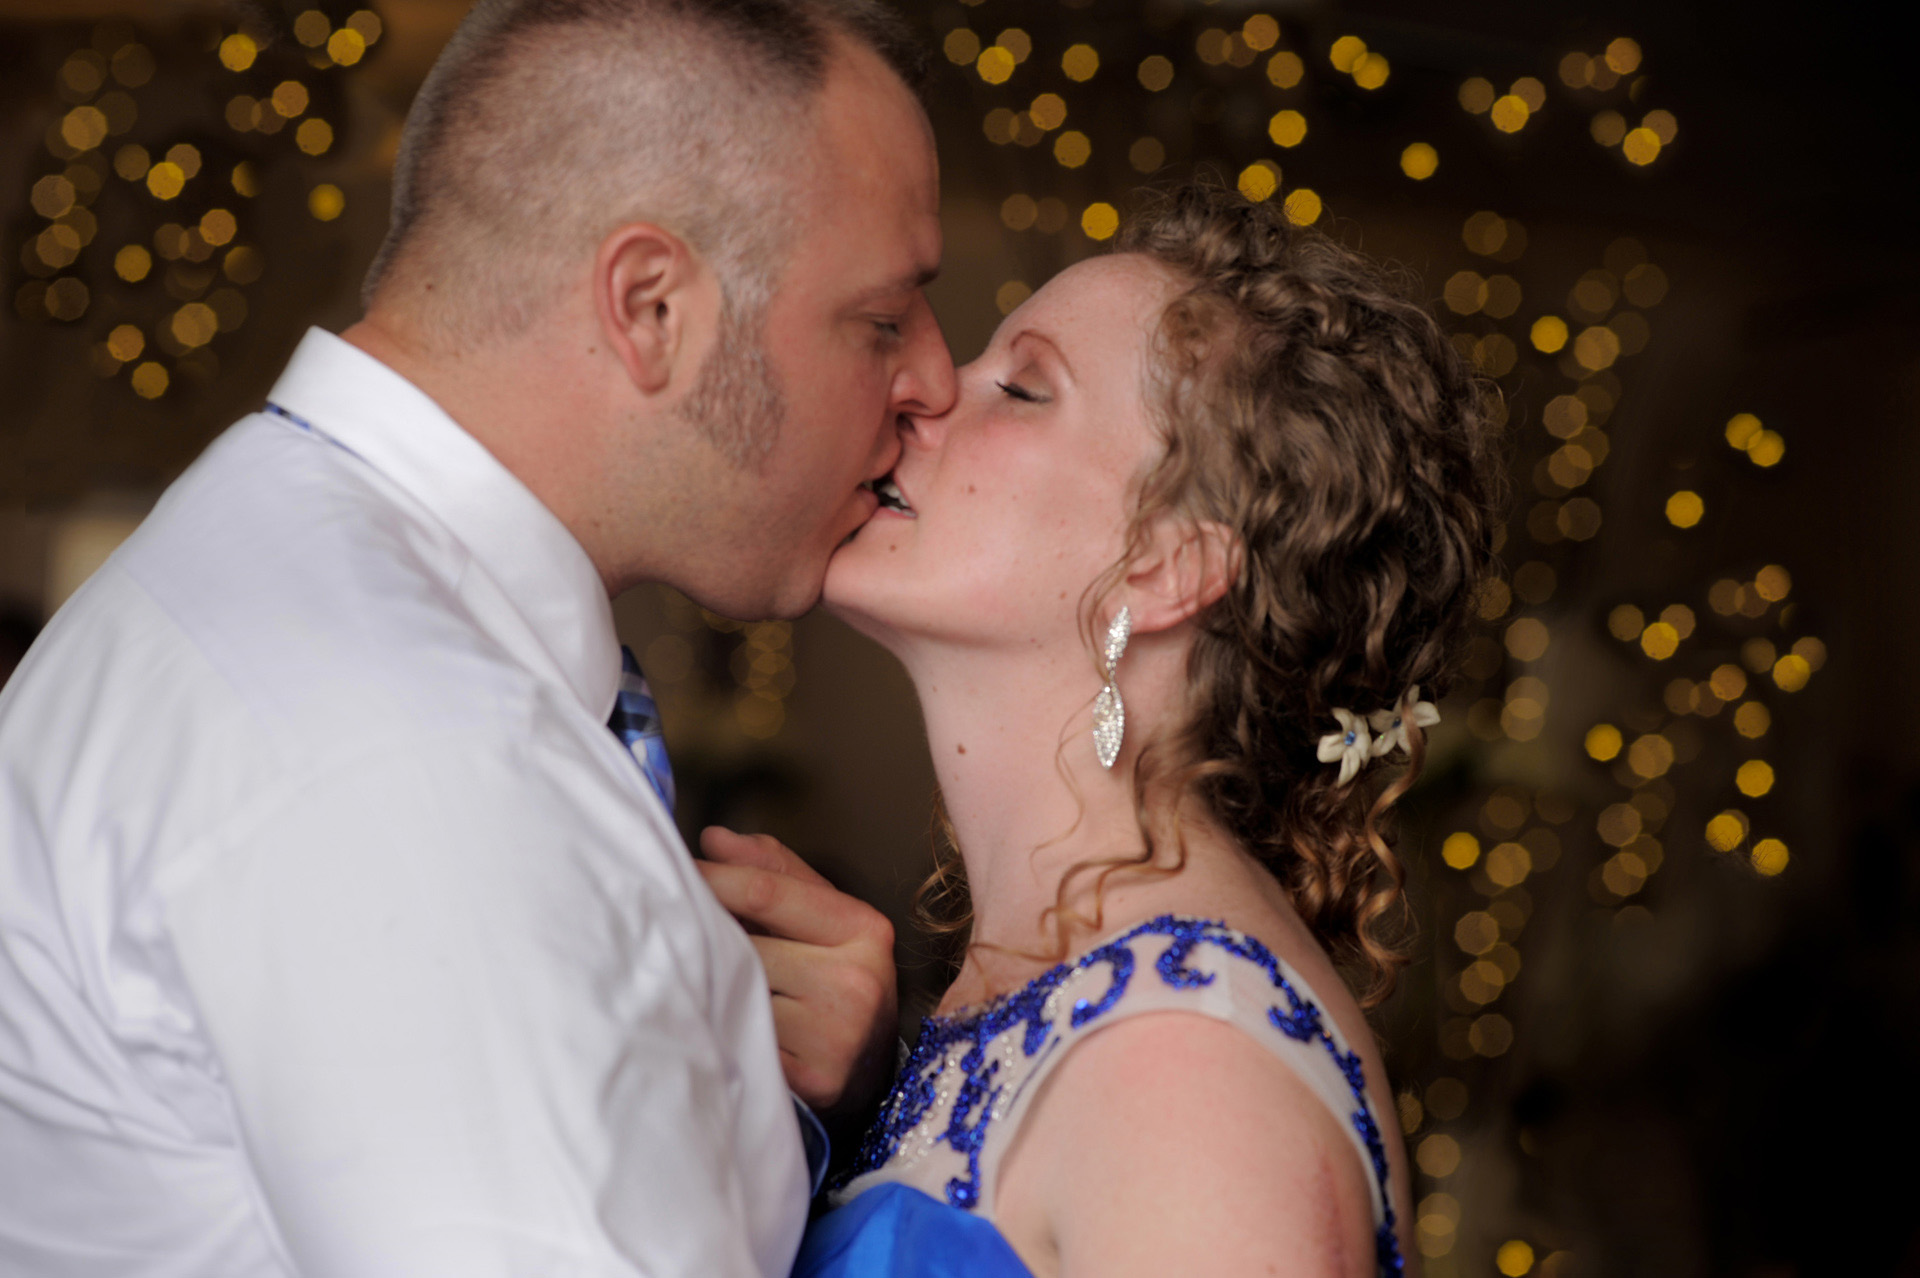 The budget conscience brides featuring contemporary and Pinterest worthy wedding photographs in Michigan highlights moving away from Pinterest to creating your unique wedding photography showing the bride and groom kissing during their wedding reception at the Michigan wedding that emphasized photojournalist's moments and kept the bride on her budget.